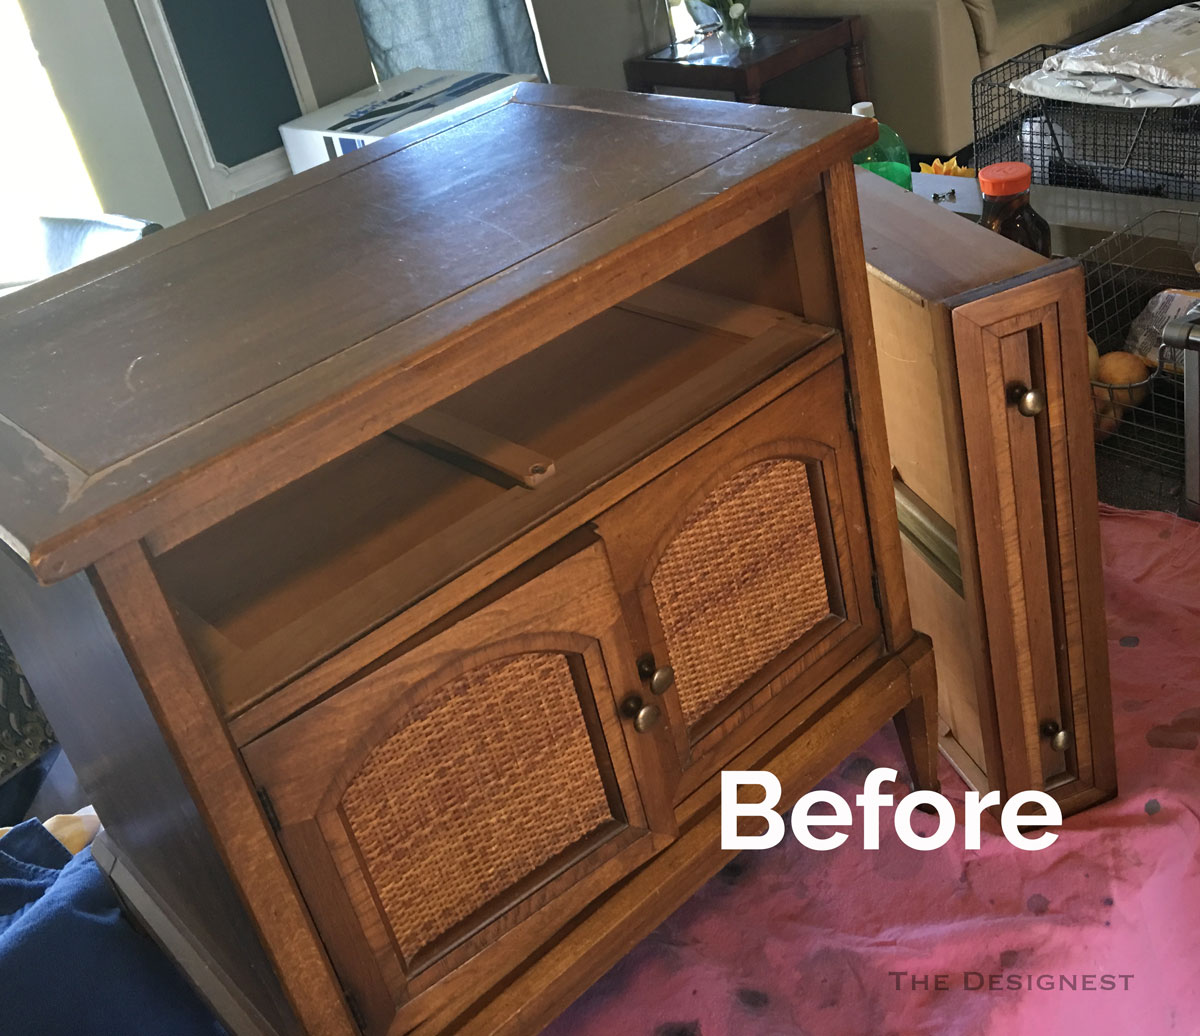 Before you paint furniture, make sure you read these tips.